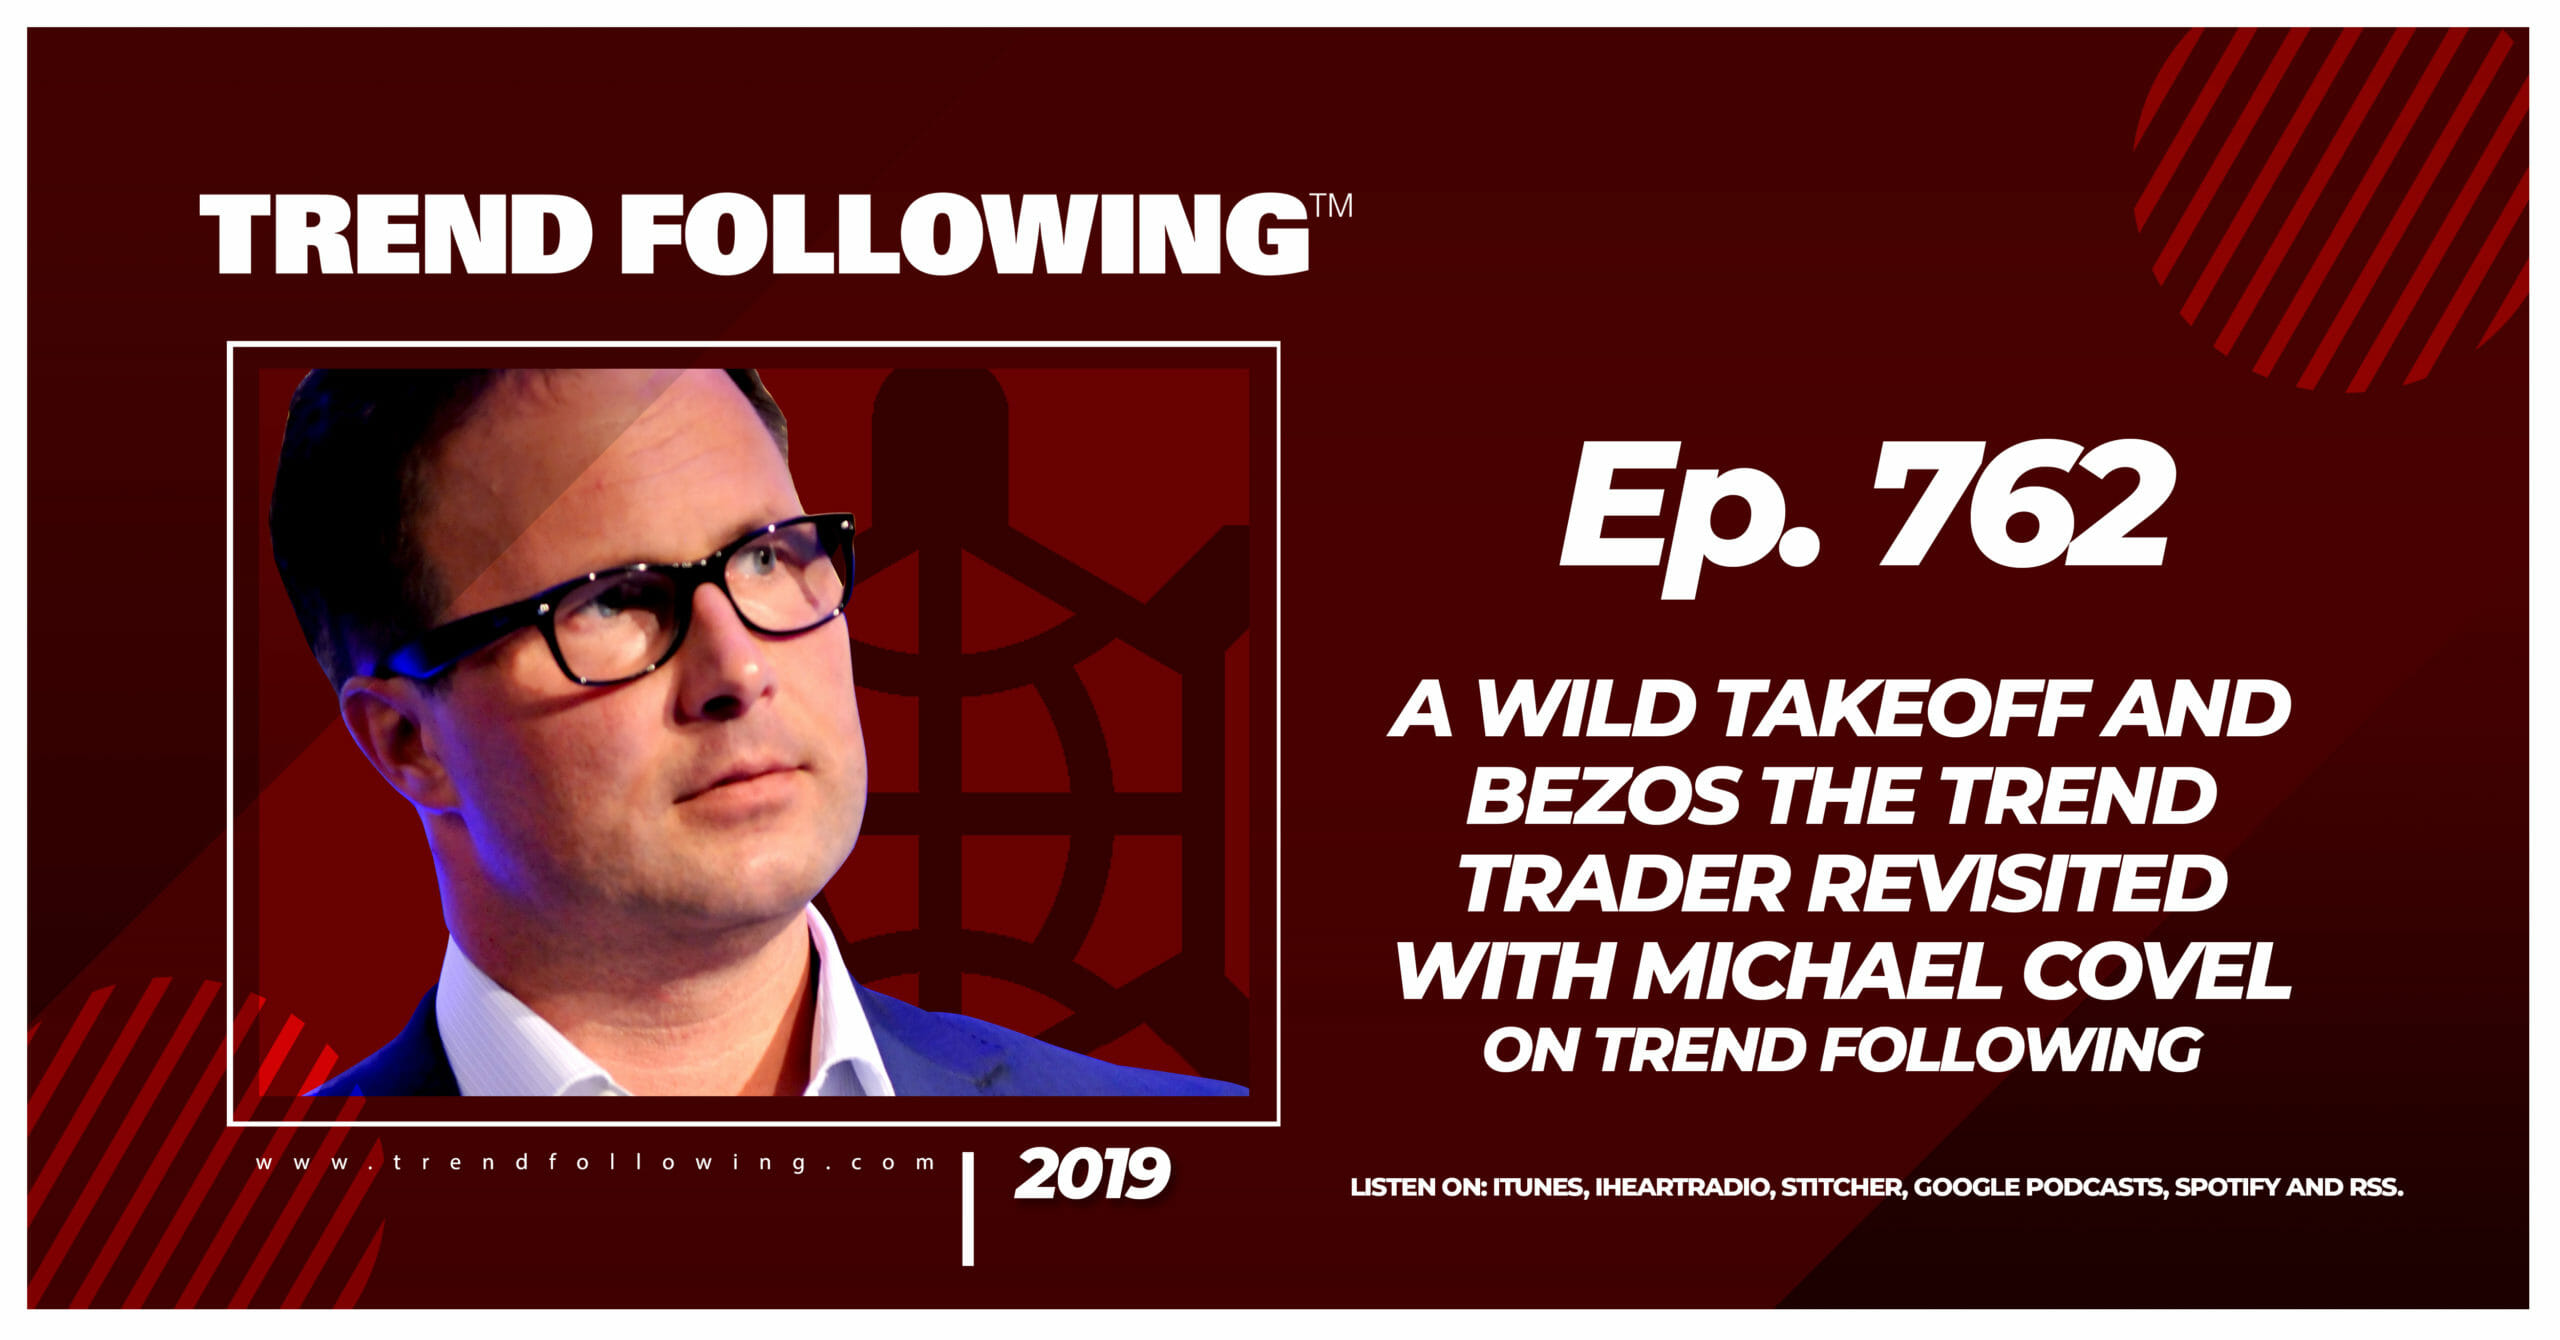 A Wild Takeoff and Bezos the Trend Trader Revisited with Michael Covel